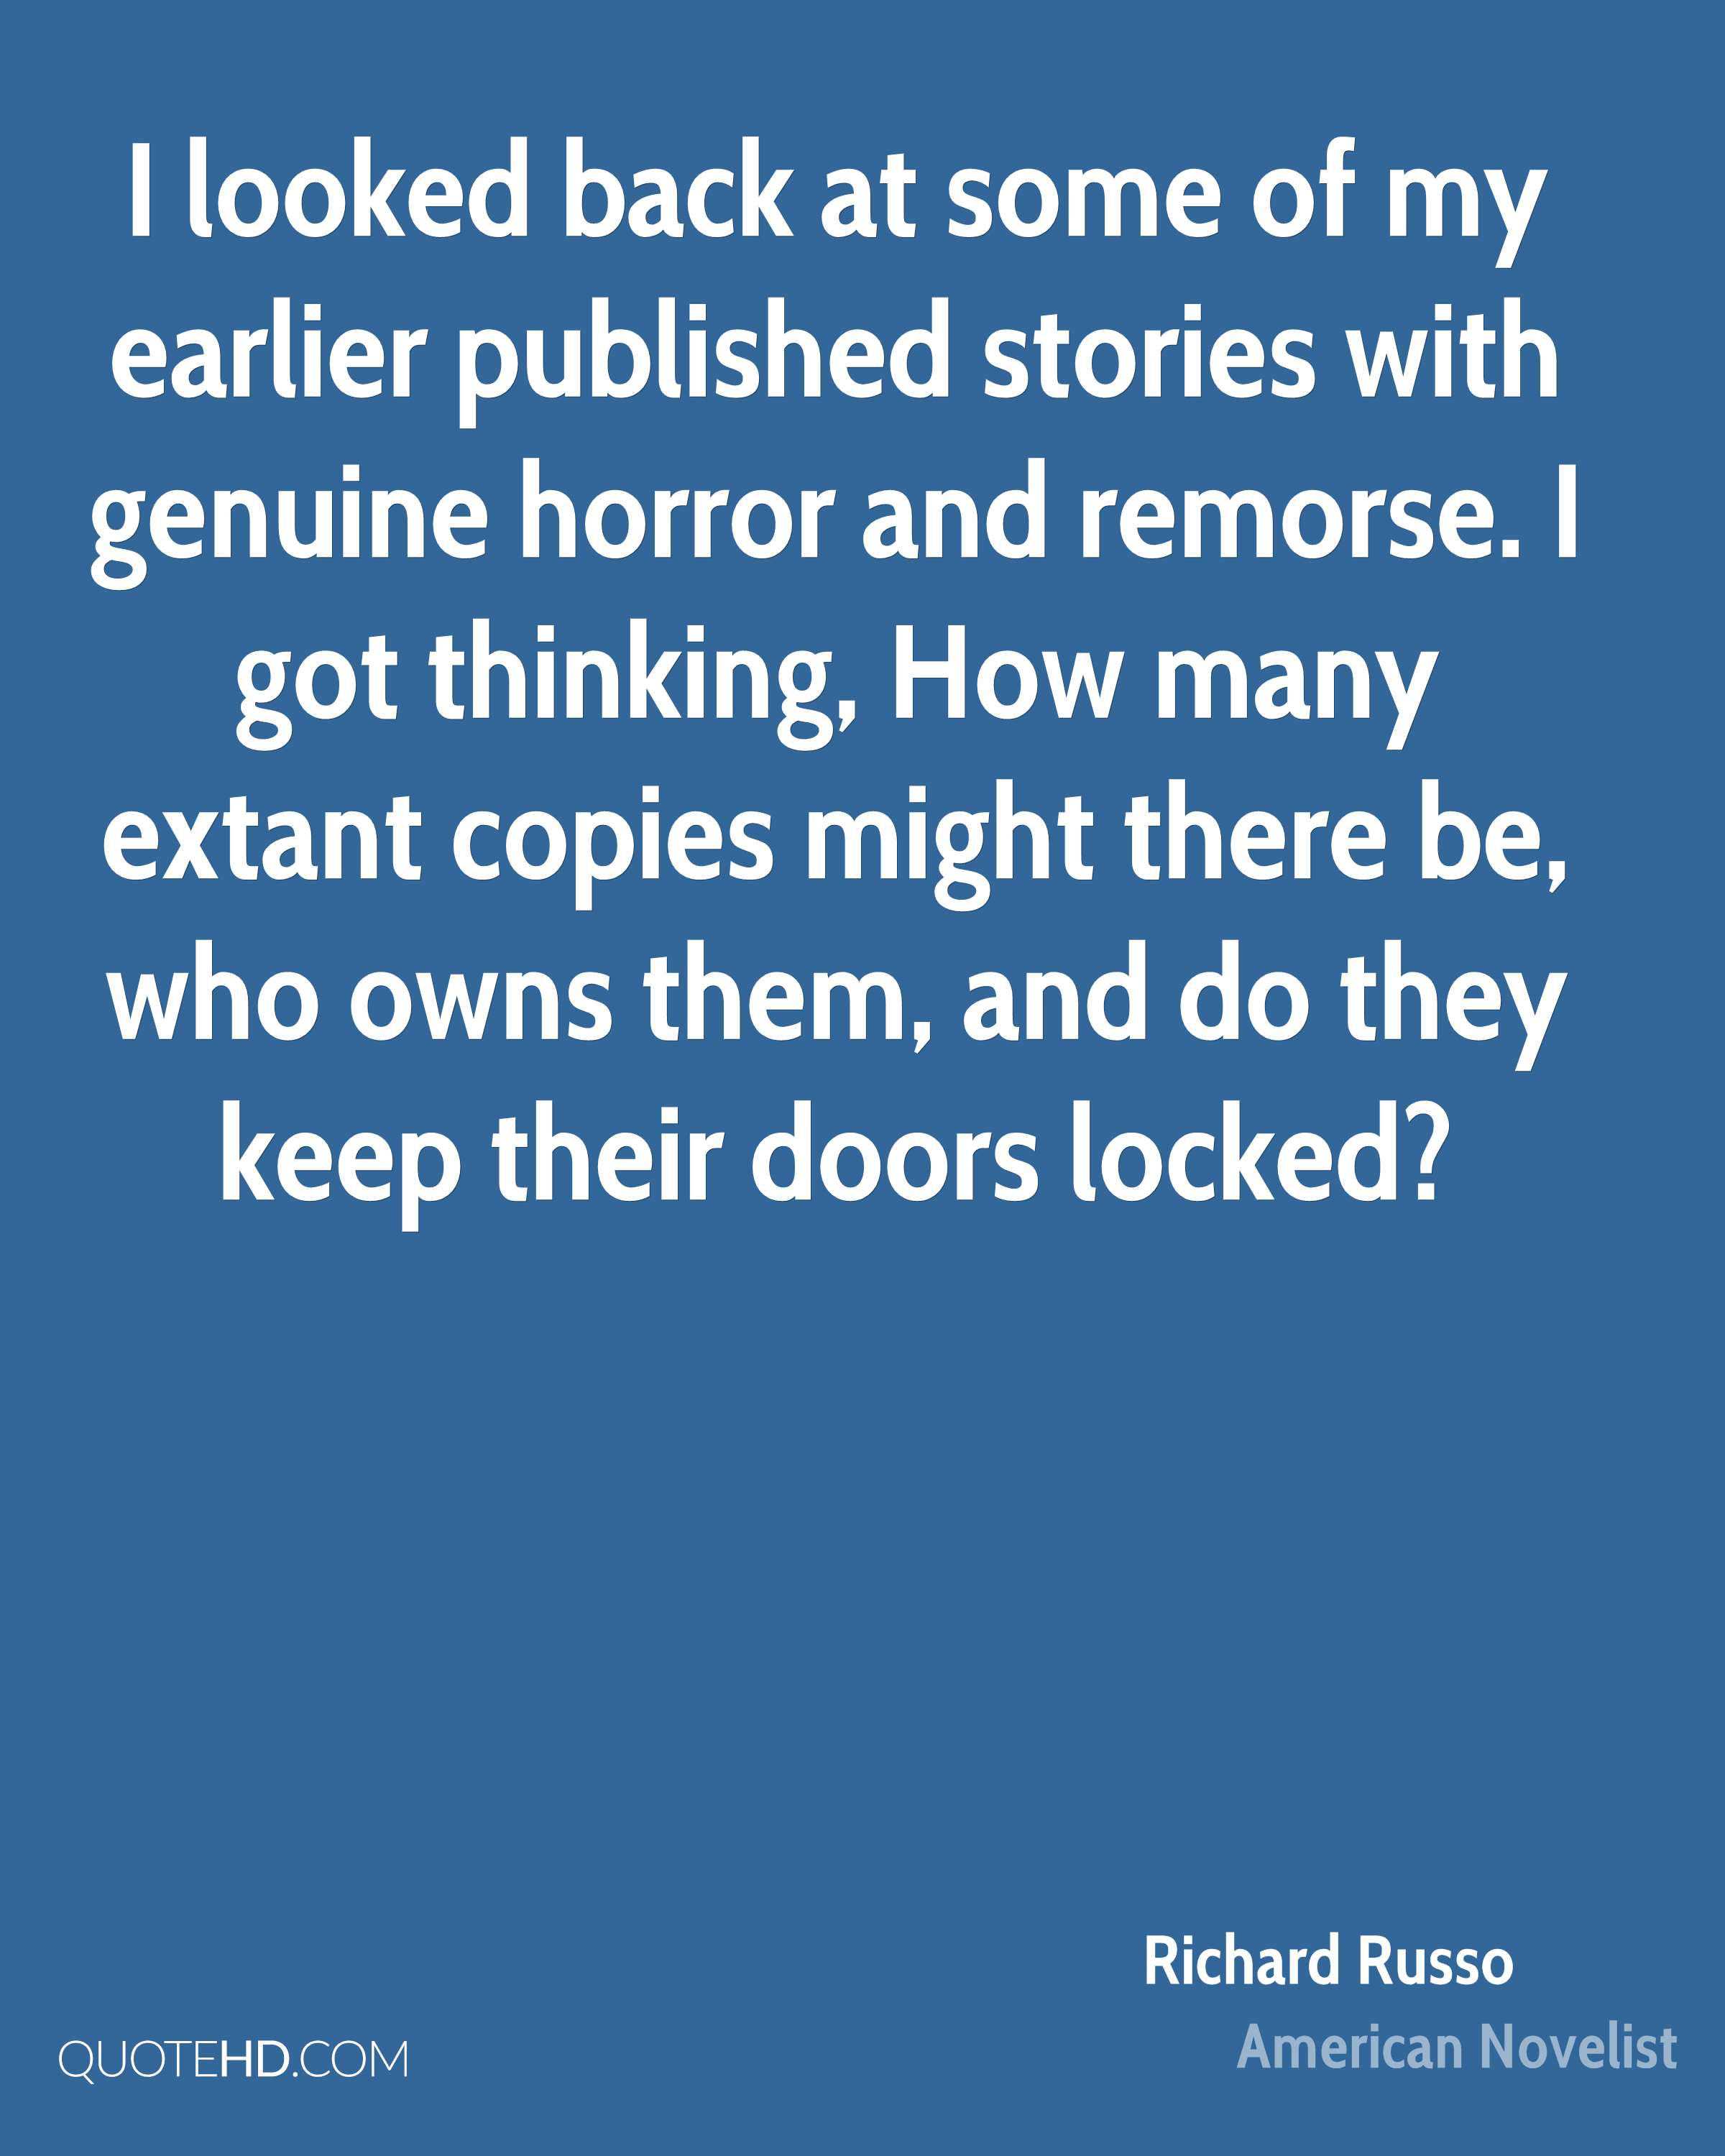 I looked back at some of my earlier published stories with genuine horror and remorse. I got thinking, How many extant copies might there be, who owns them, and do they keep their doors locked?